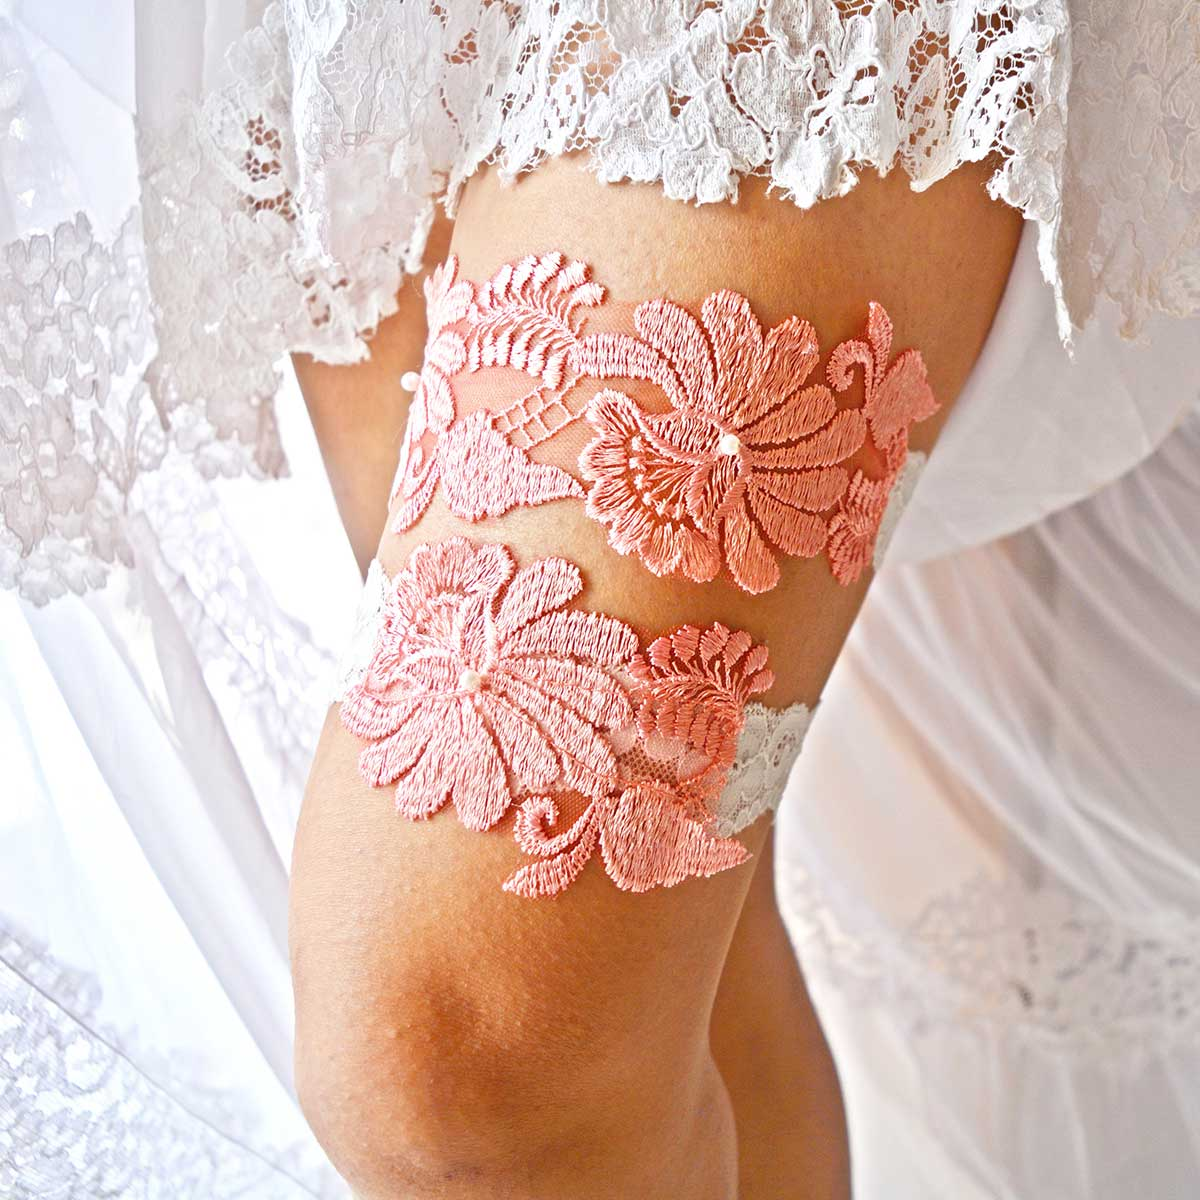 White Bridal Garter And Coral Applique Lace And Pearls - Wedding Garter - SuzannaM Designs